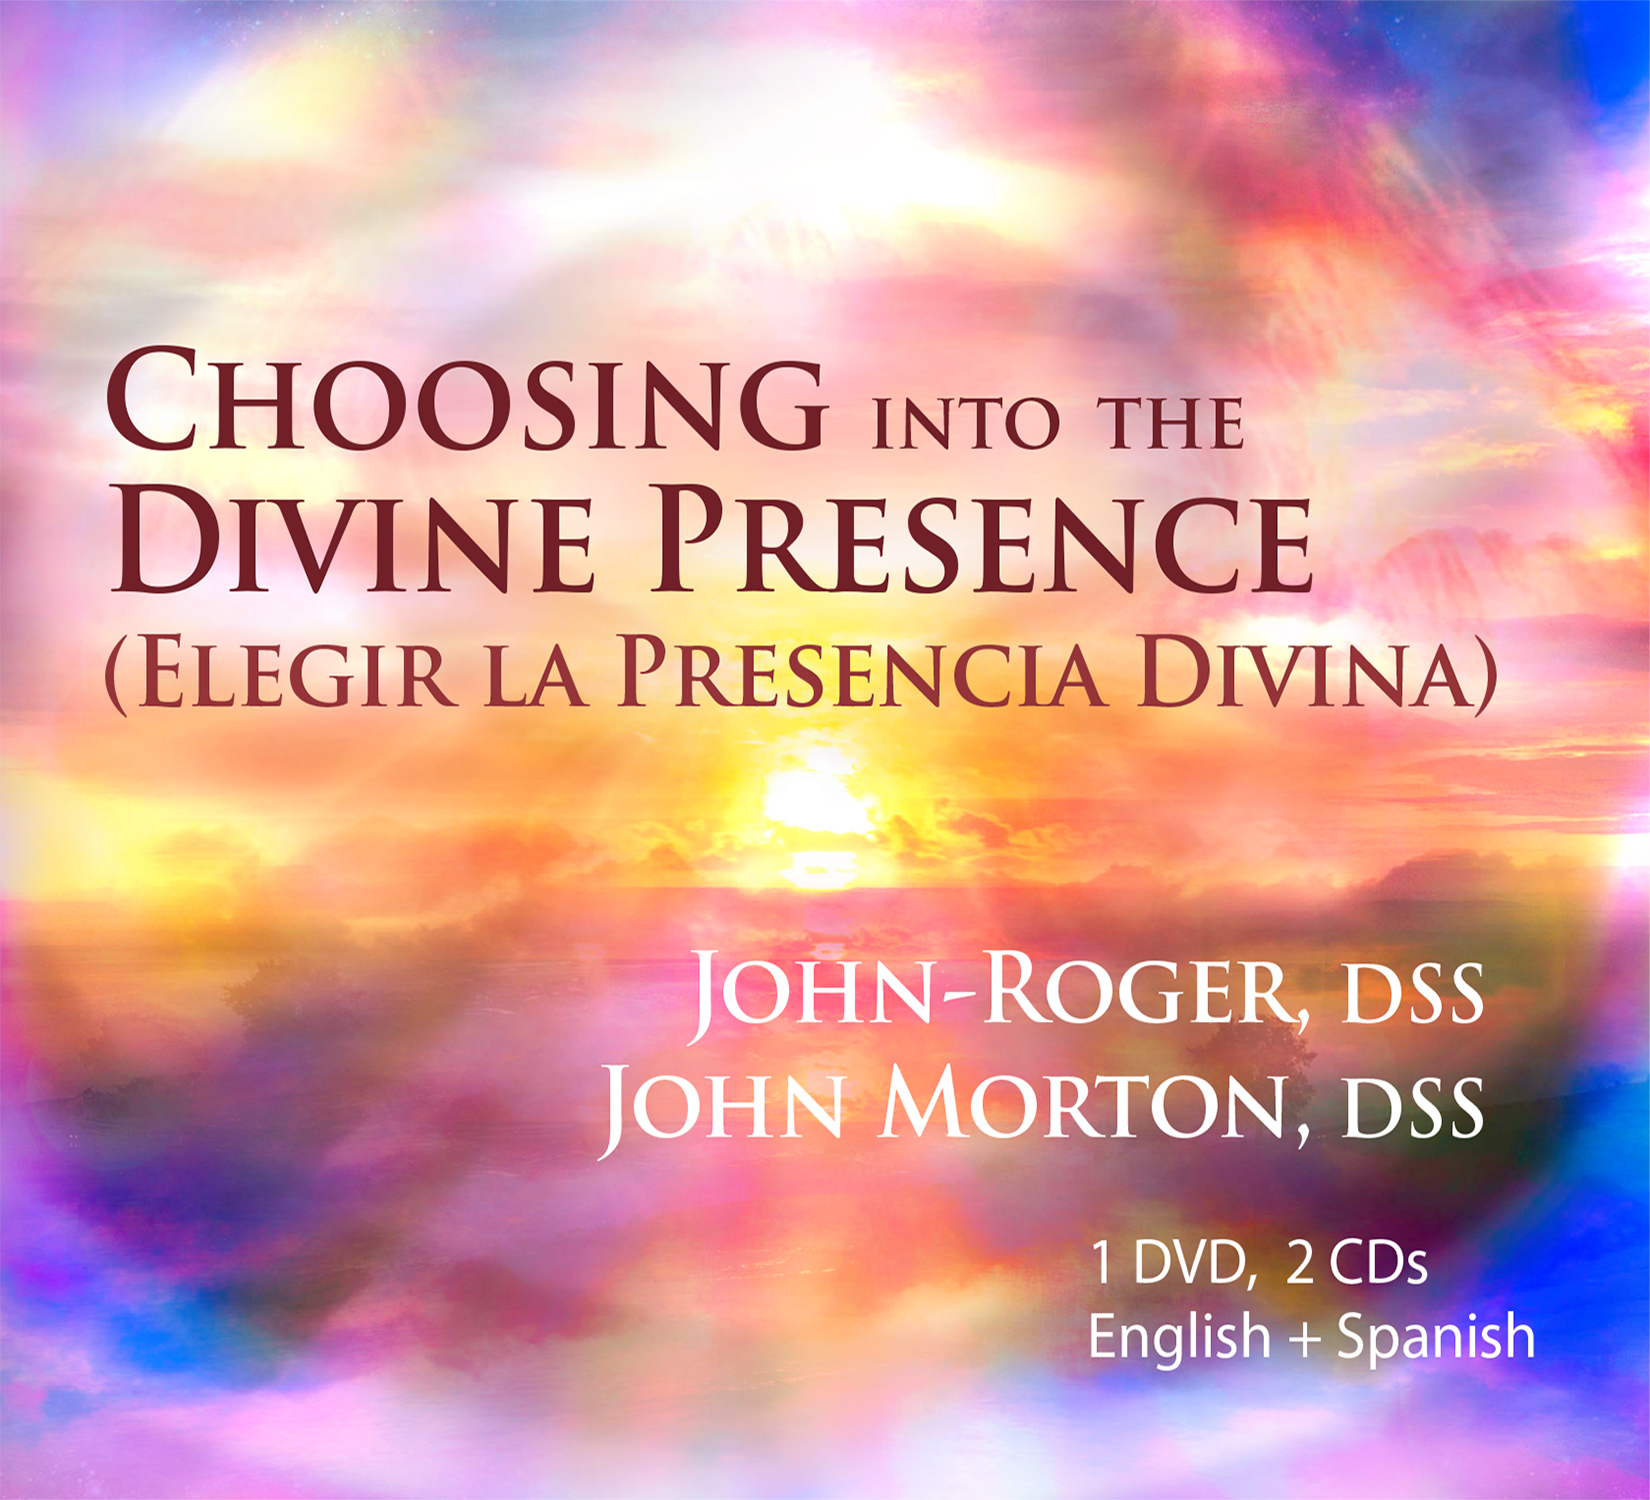 Choosing Into the Divine Presence MP3/MP4